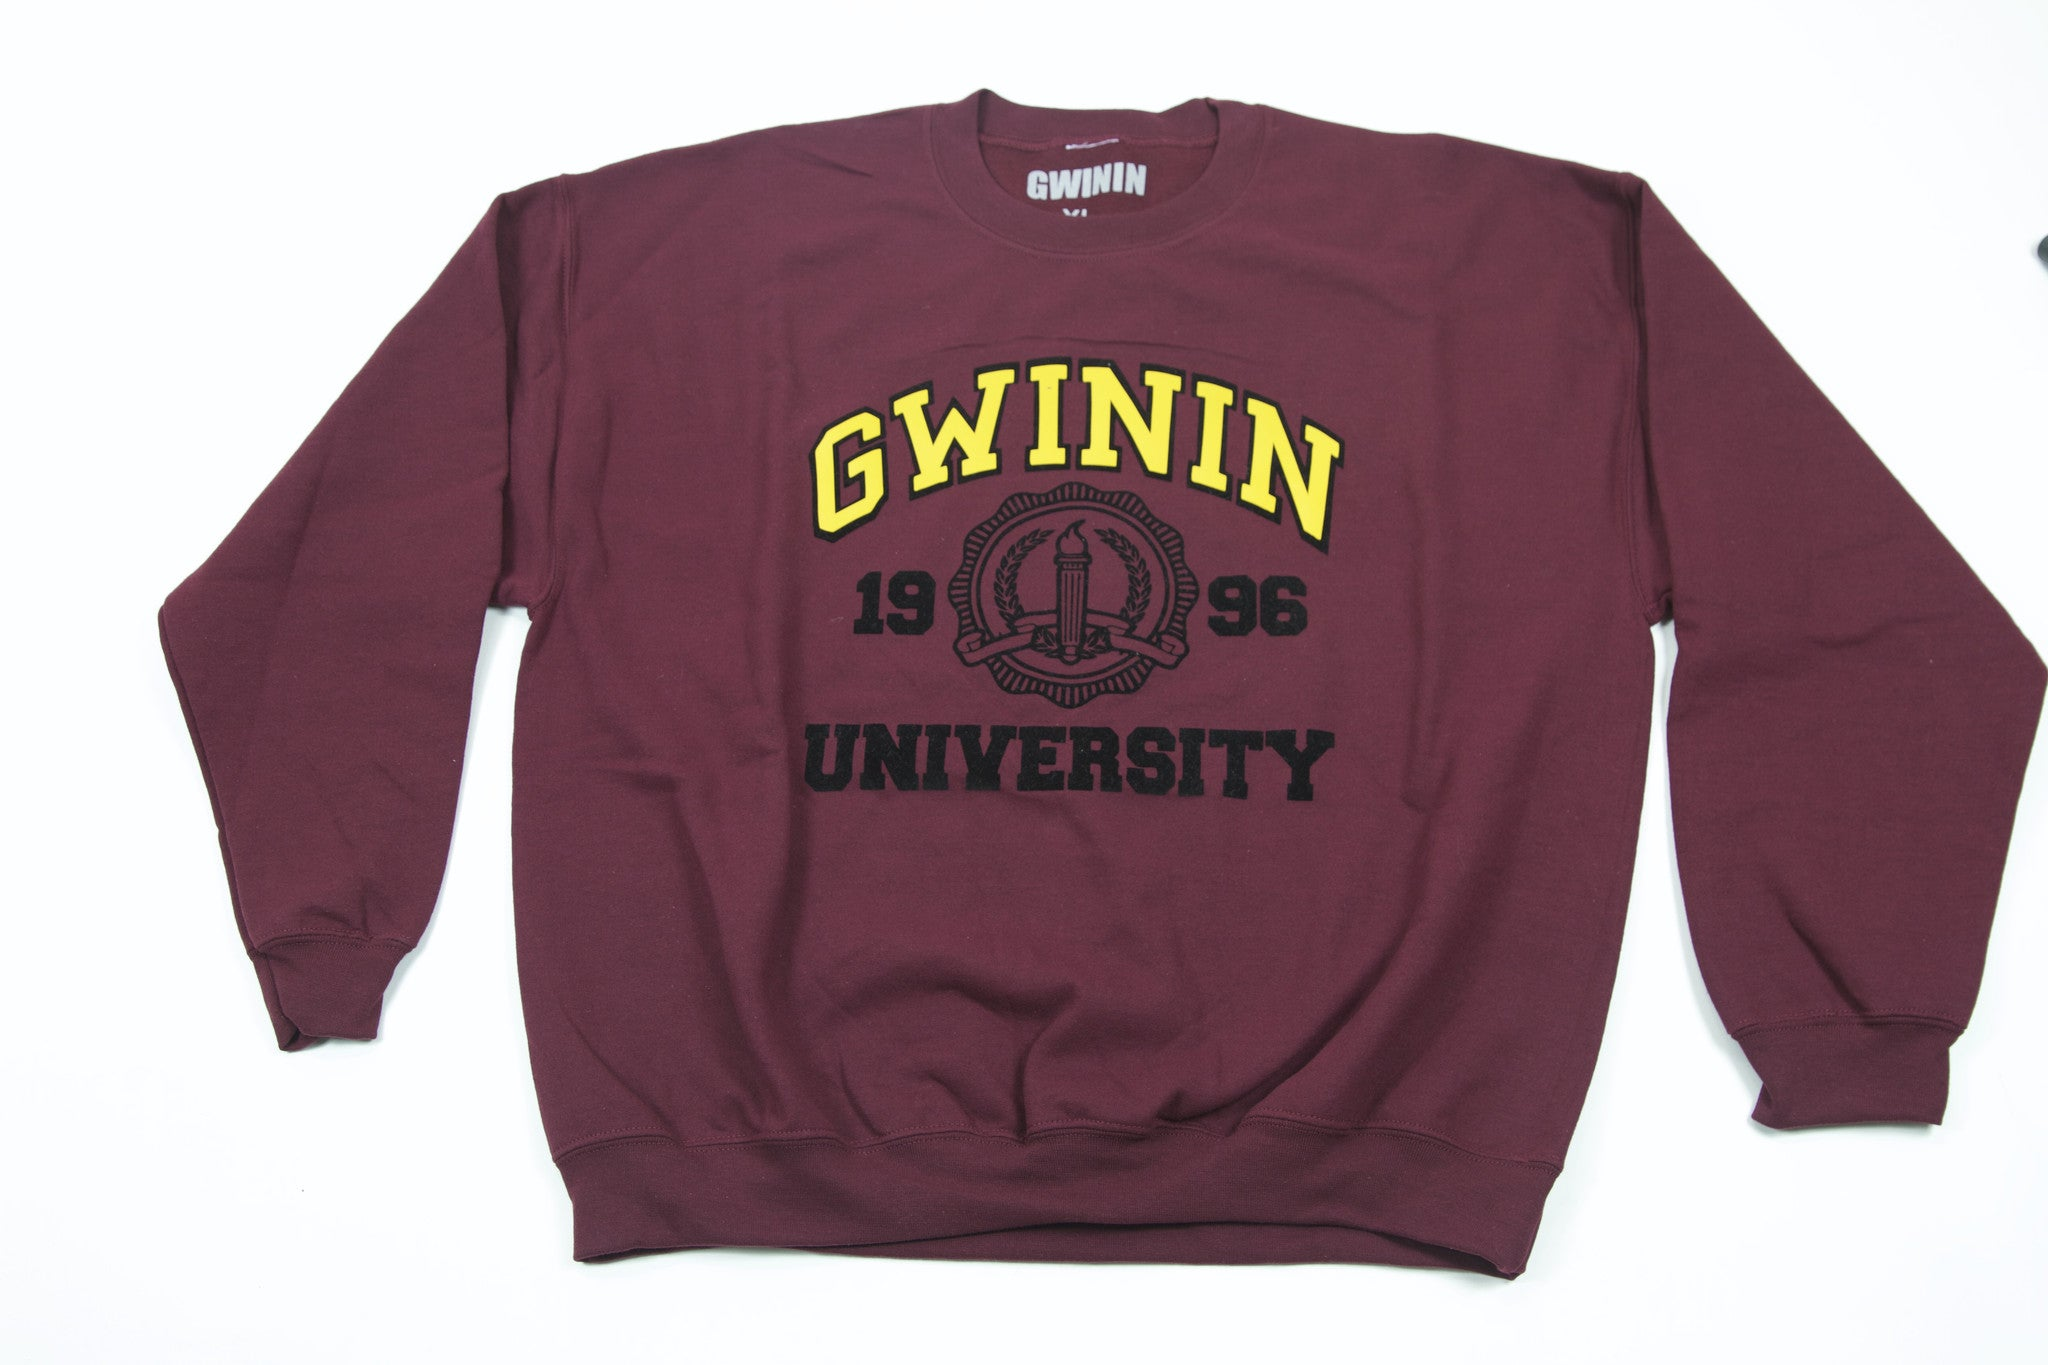 Burgundy Gwinin University Crew Neck Sweater